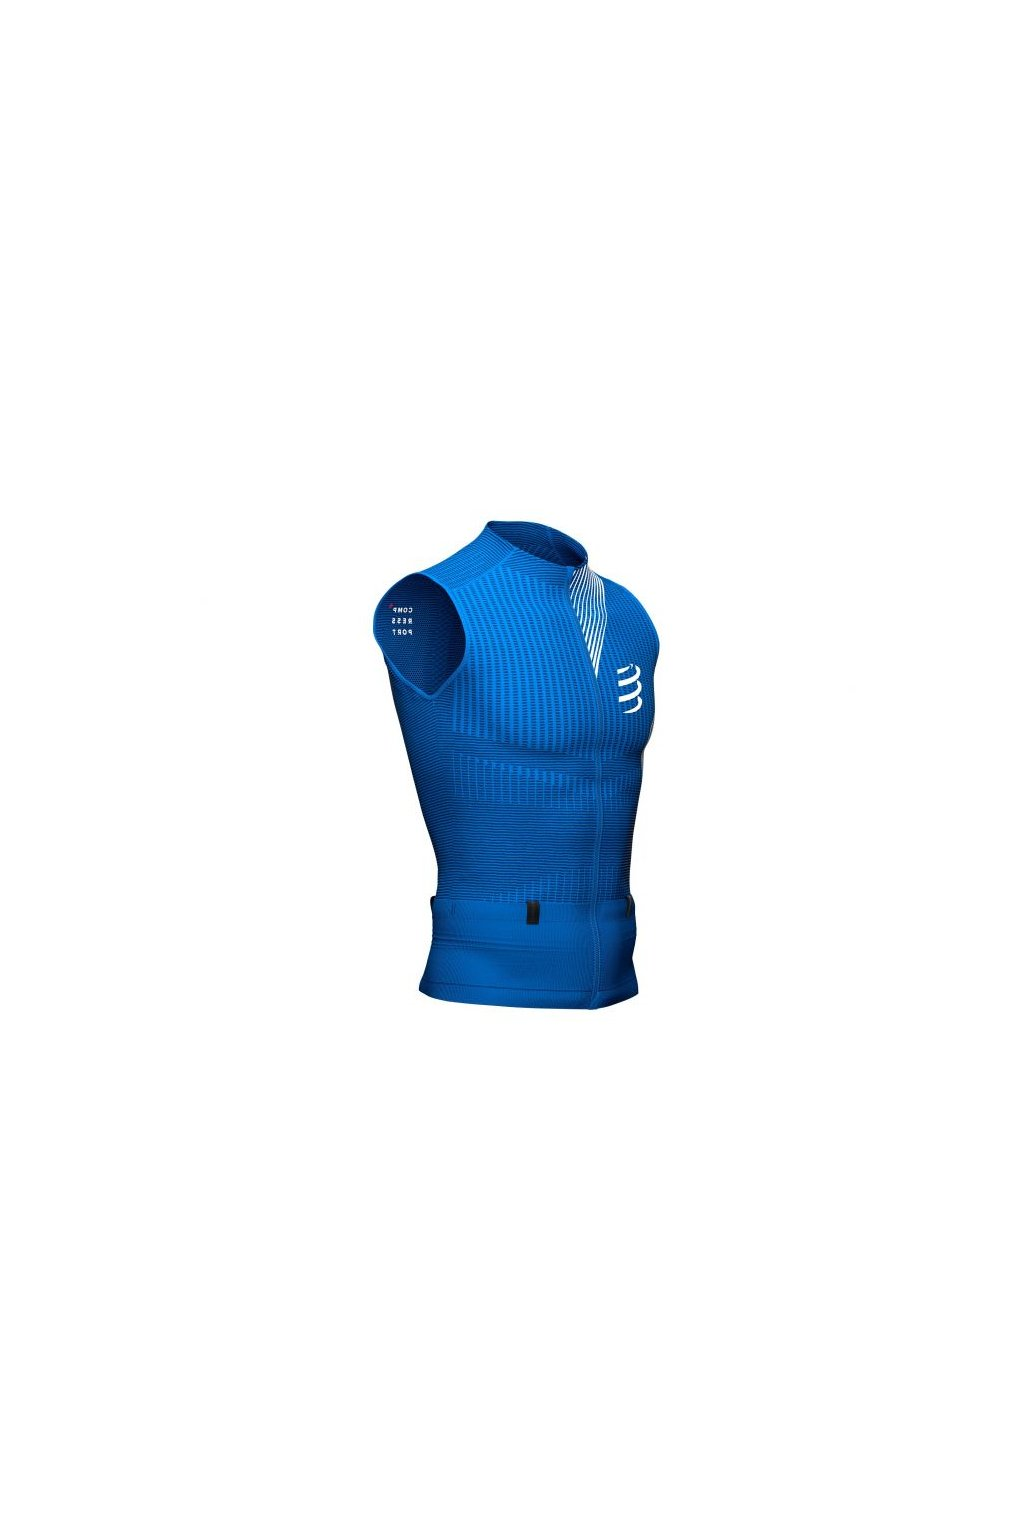 trail postural compression tank top blue lolite